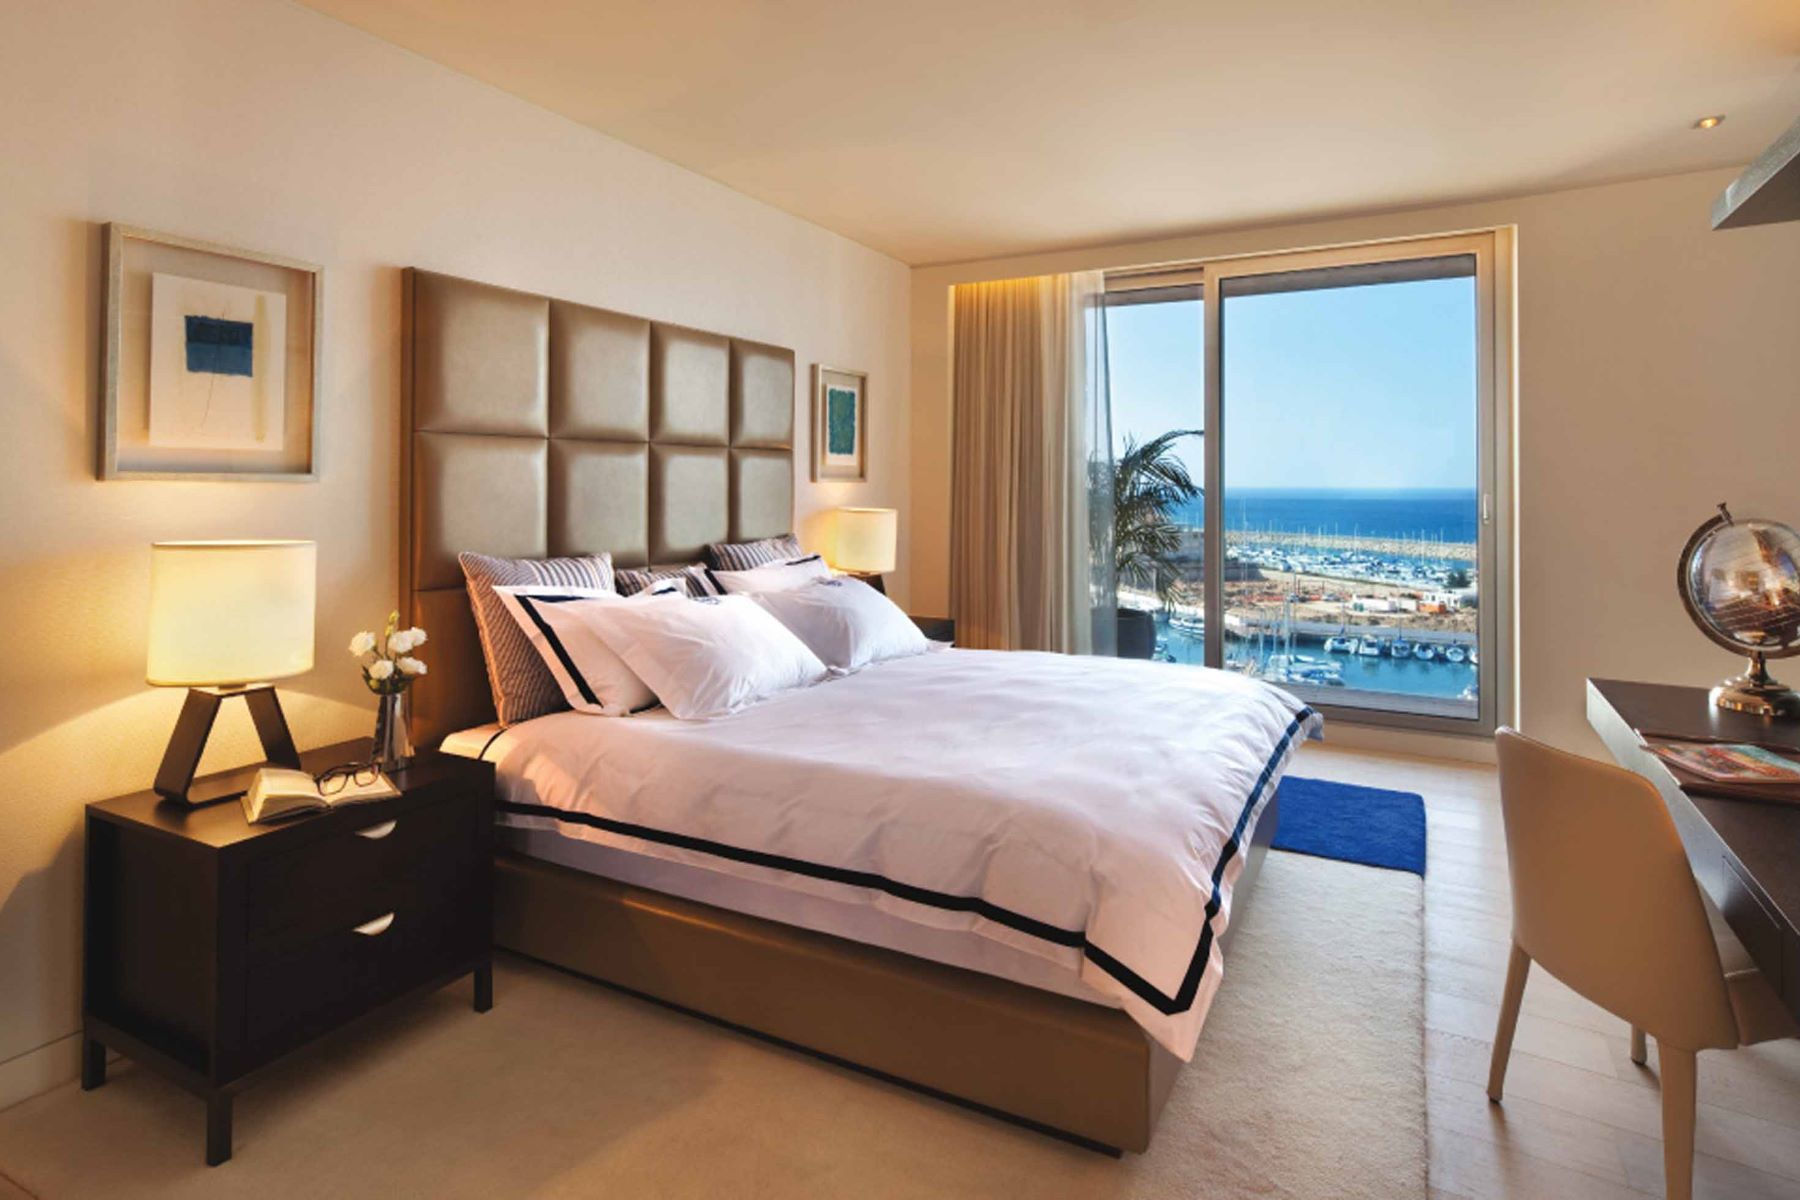 Additional photo for property listing at Ritz-Carlton Residences Herzliya Penthouse Herzliya, Israel Israël